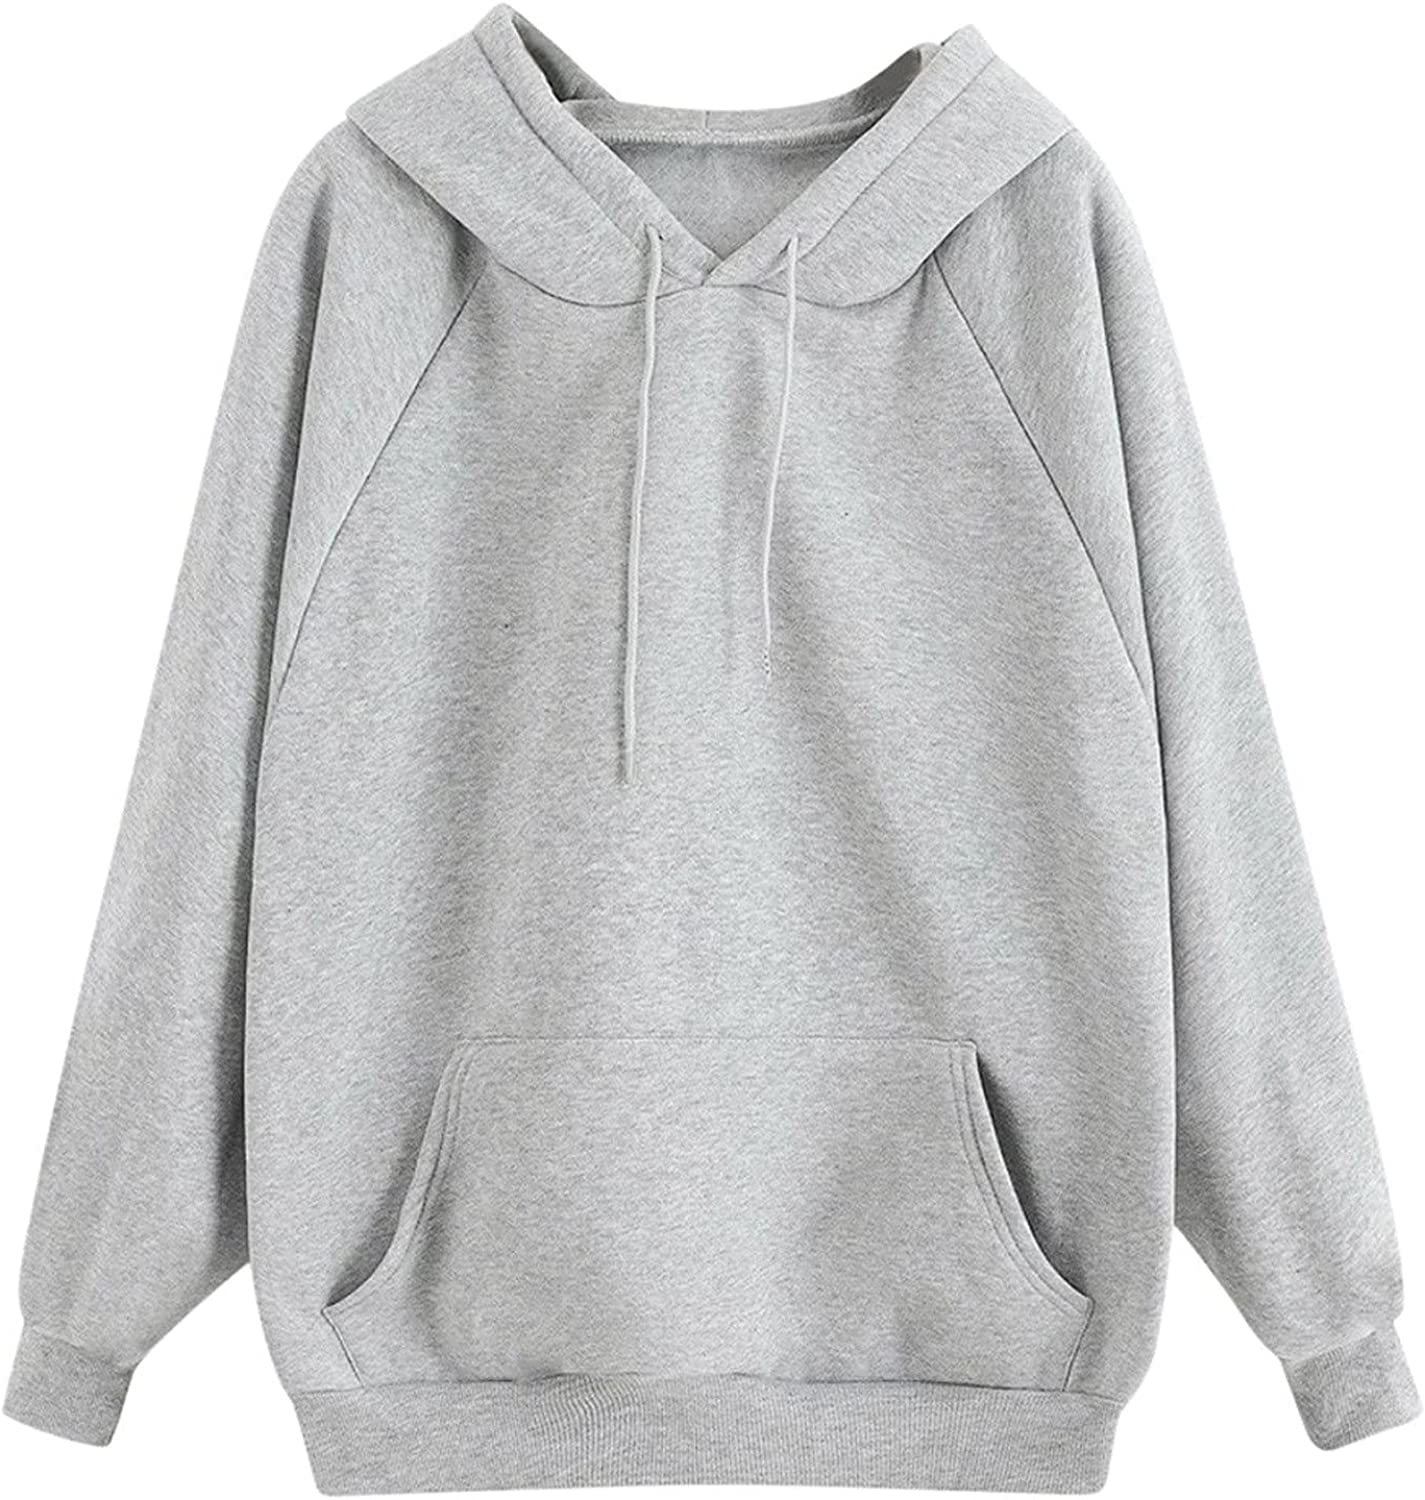 Women's Long Sleeve Solid Pullover Comfy Casual Hoodie Sweatshirt Short Thick Warm Top Tunic with Pocket